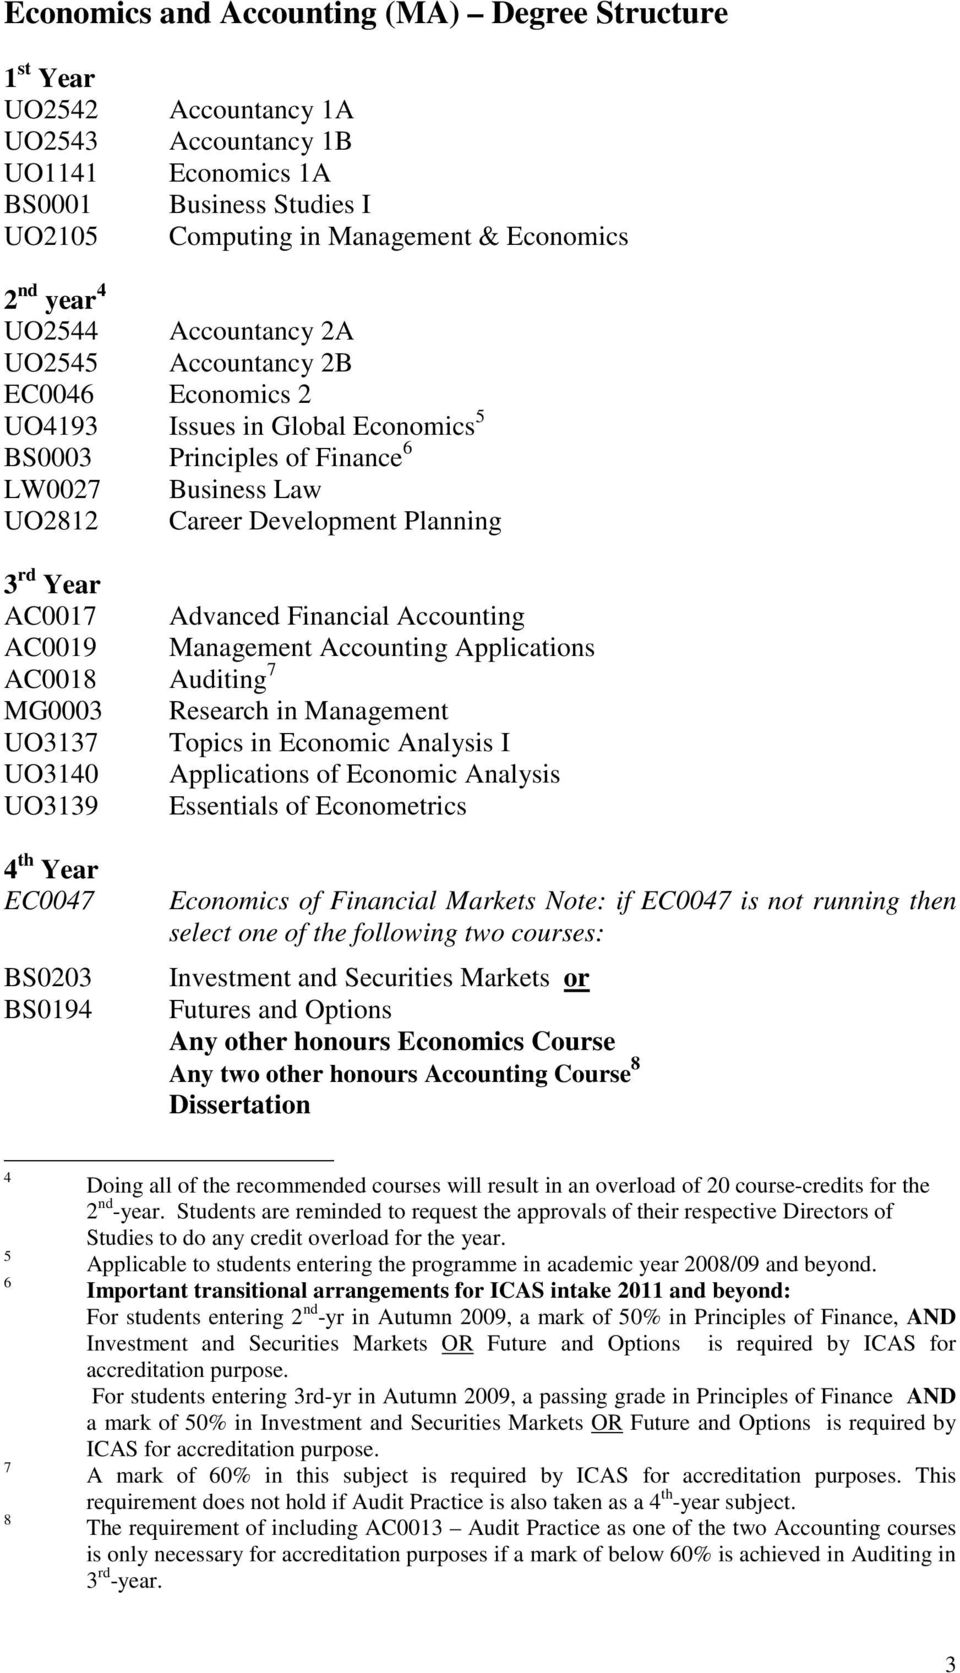 AC0017 Advanced Financial Accounting AC0019 Management Accounting Applications AC0018 Auditing 7 MG0003 Research in Management UO3137 Topics in Economic Analysis I UO3140 Applications of Economic